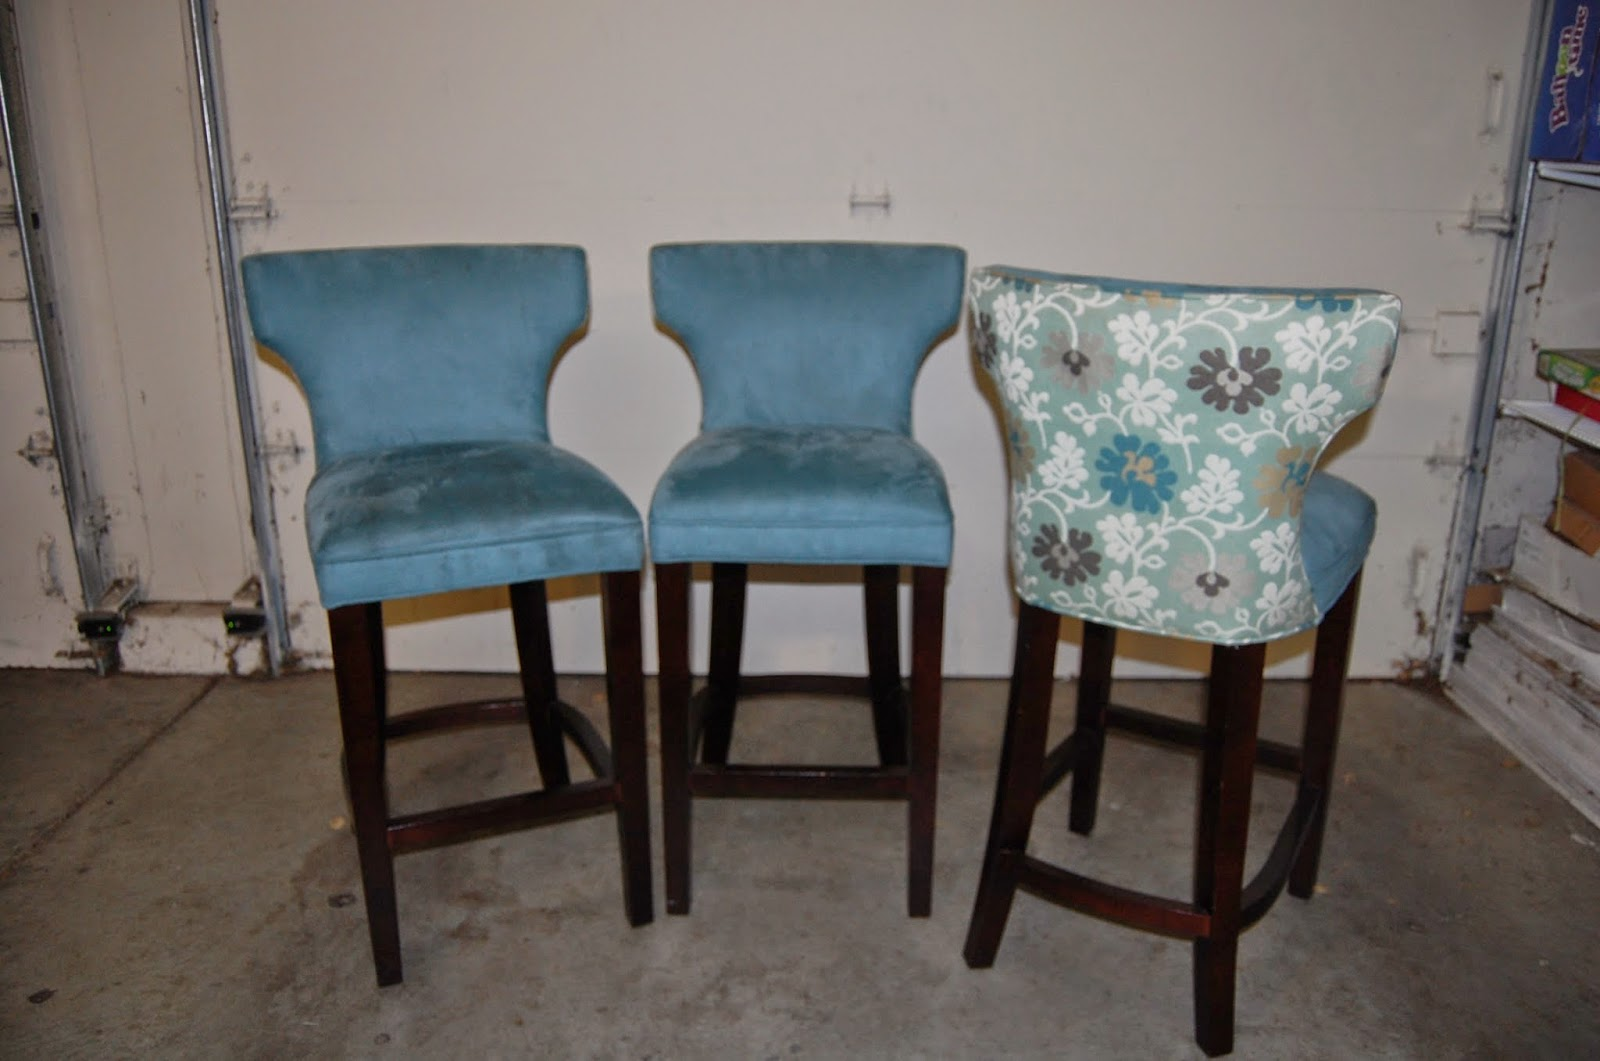 Items for sale: Bar Stools & Curved Bench -- $400